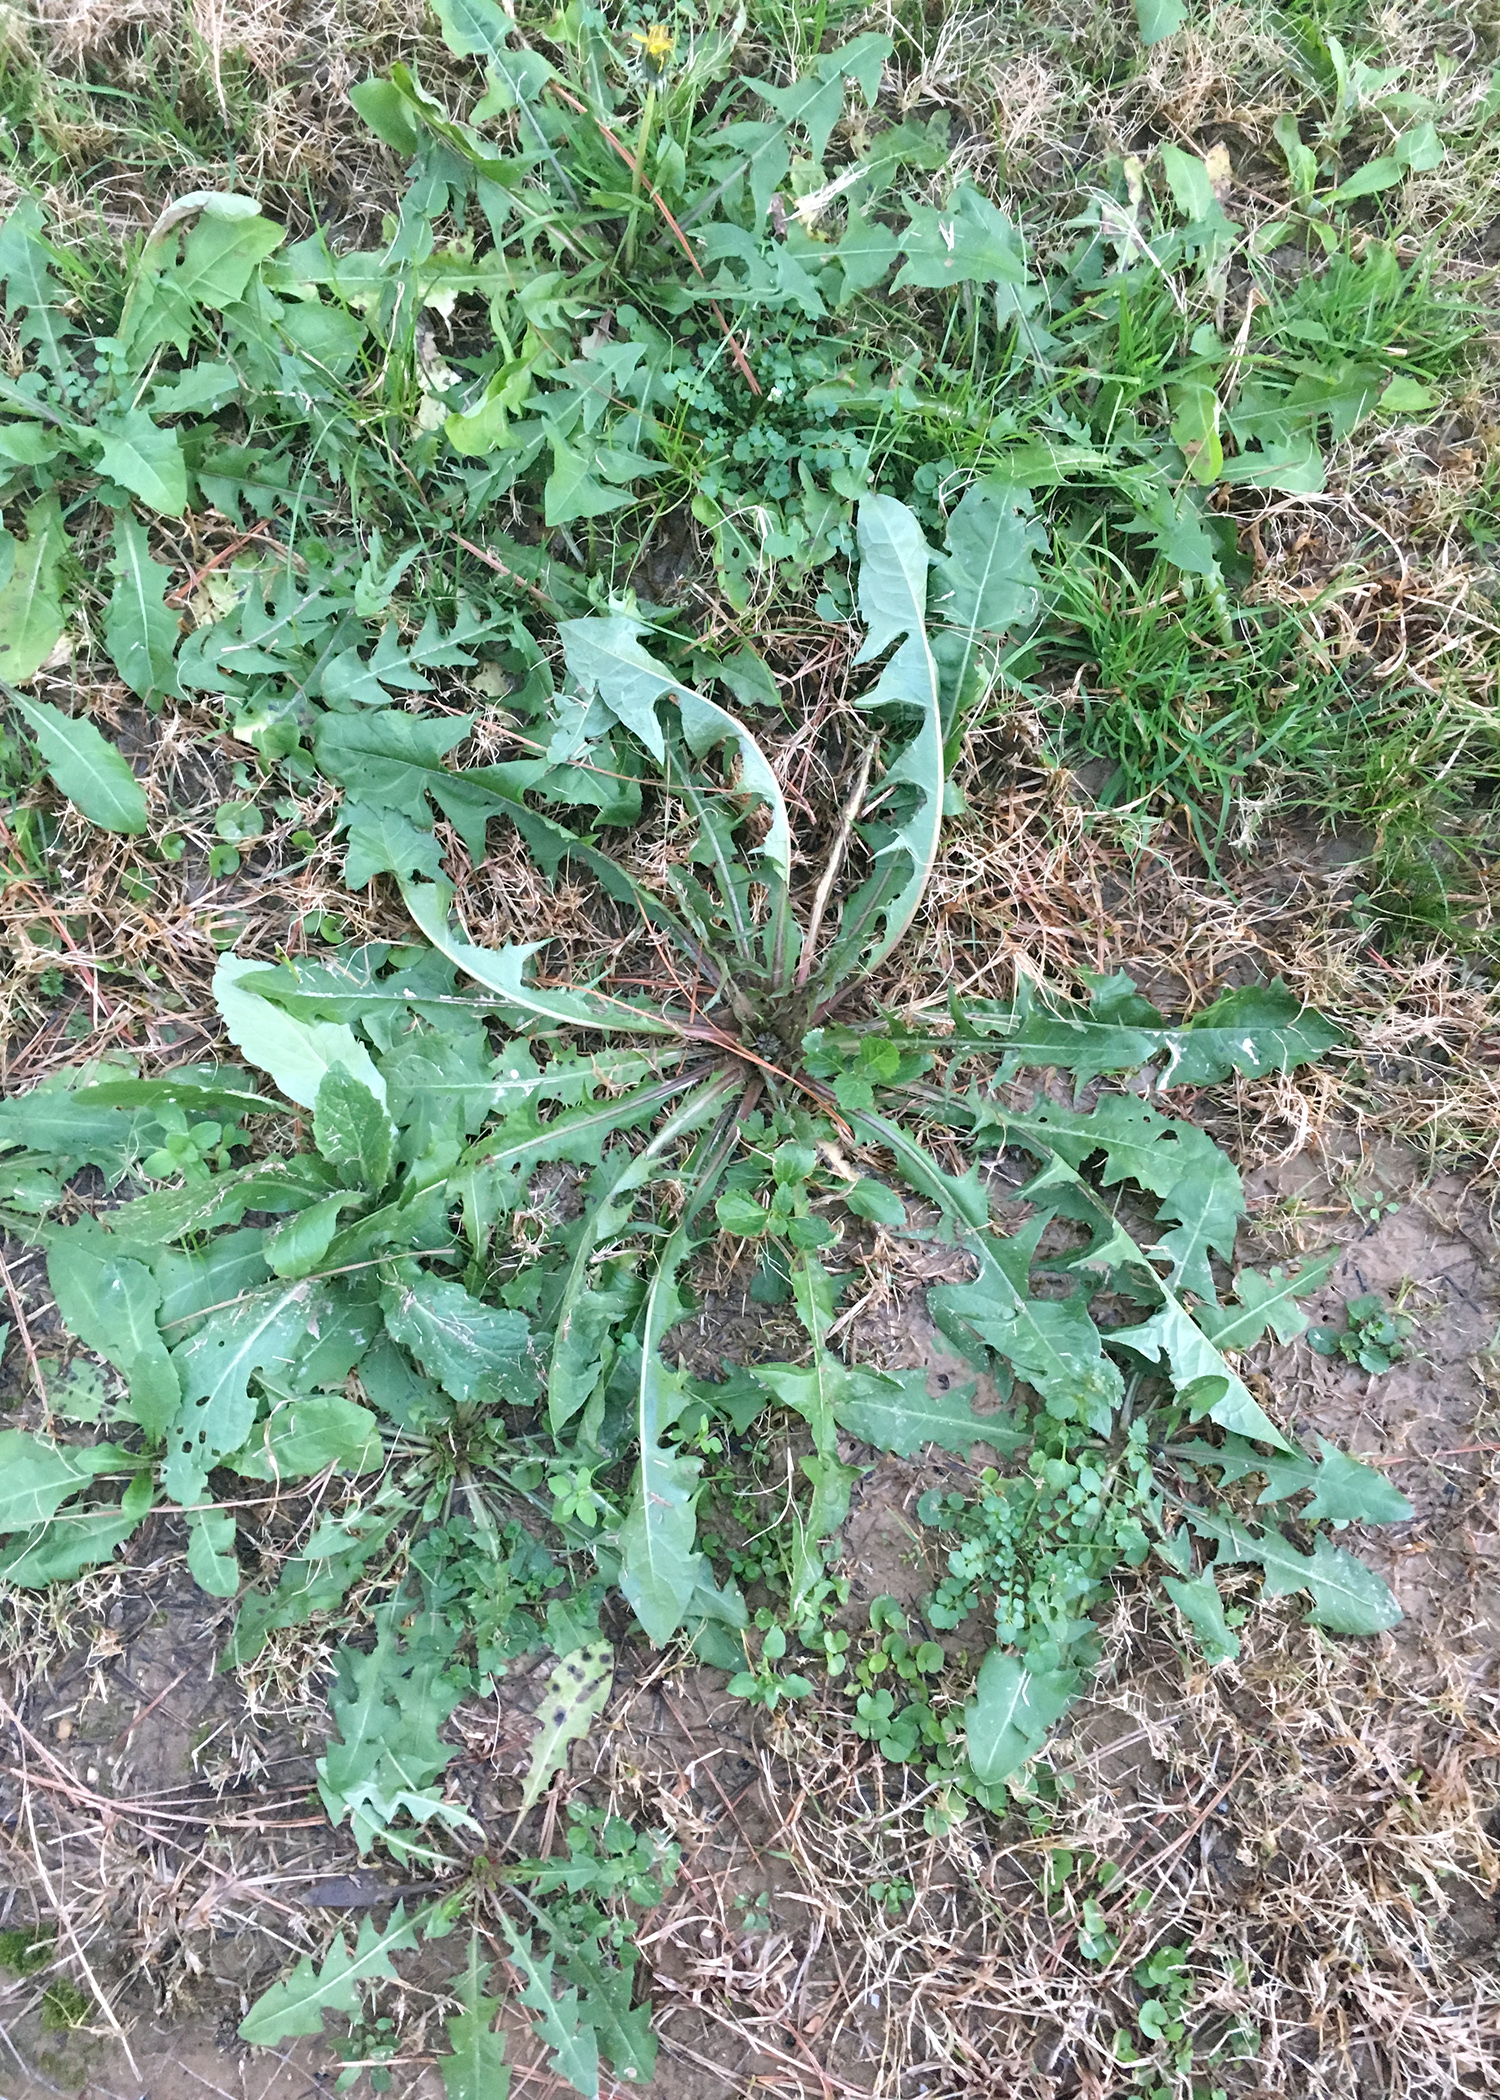 Unwanted Yard And Flowerbed Weeds Such As This Common Dandelion Can Be Avoided By Using Herbicides